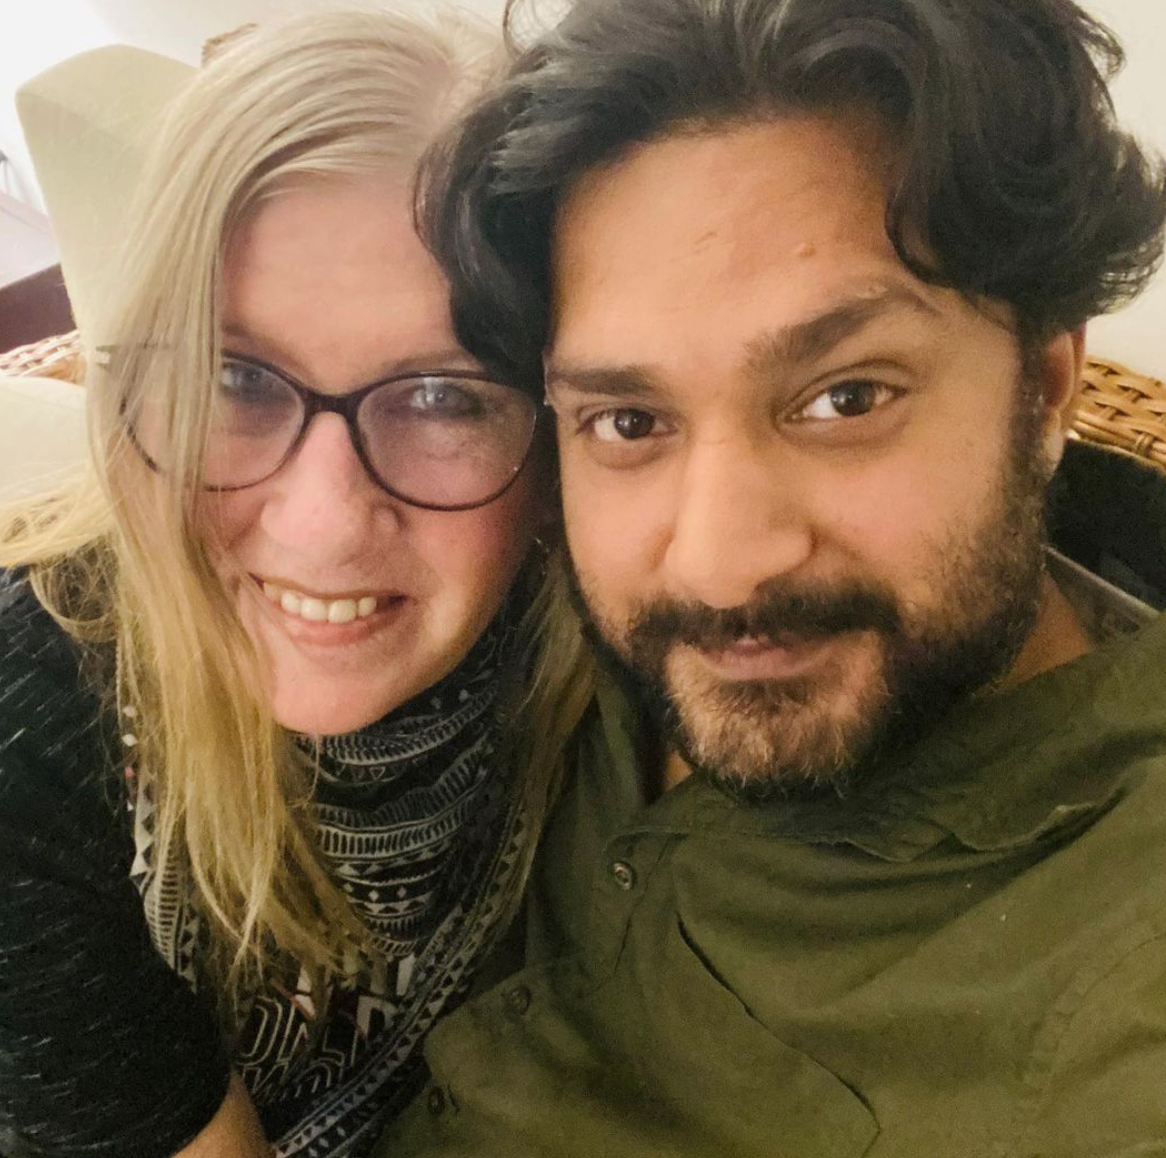 90 Day Fiance's Jenny and Sumit COVID-19